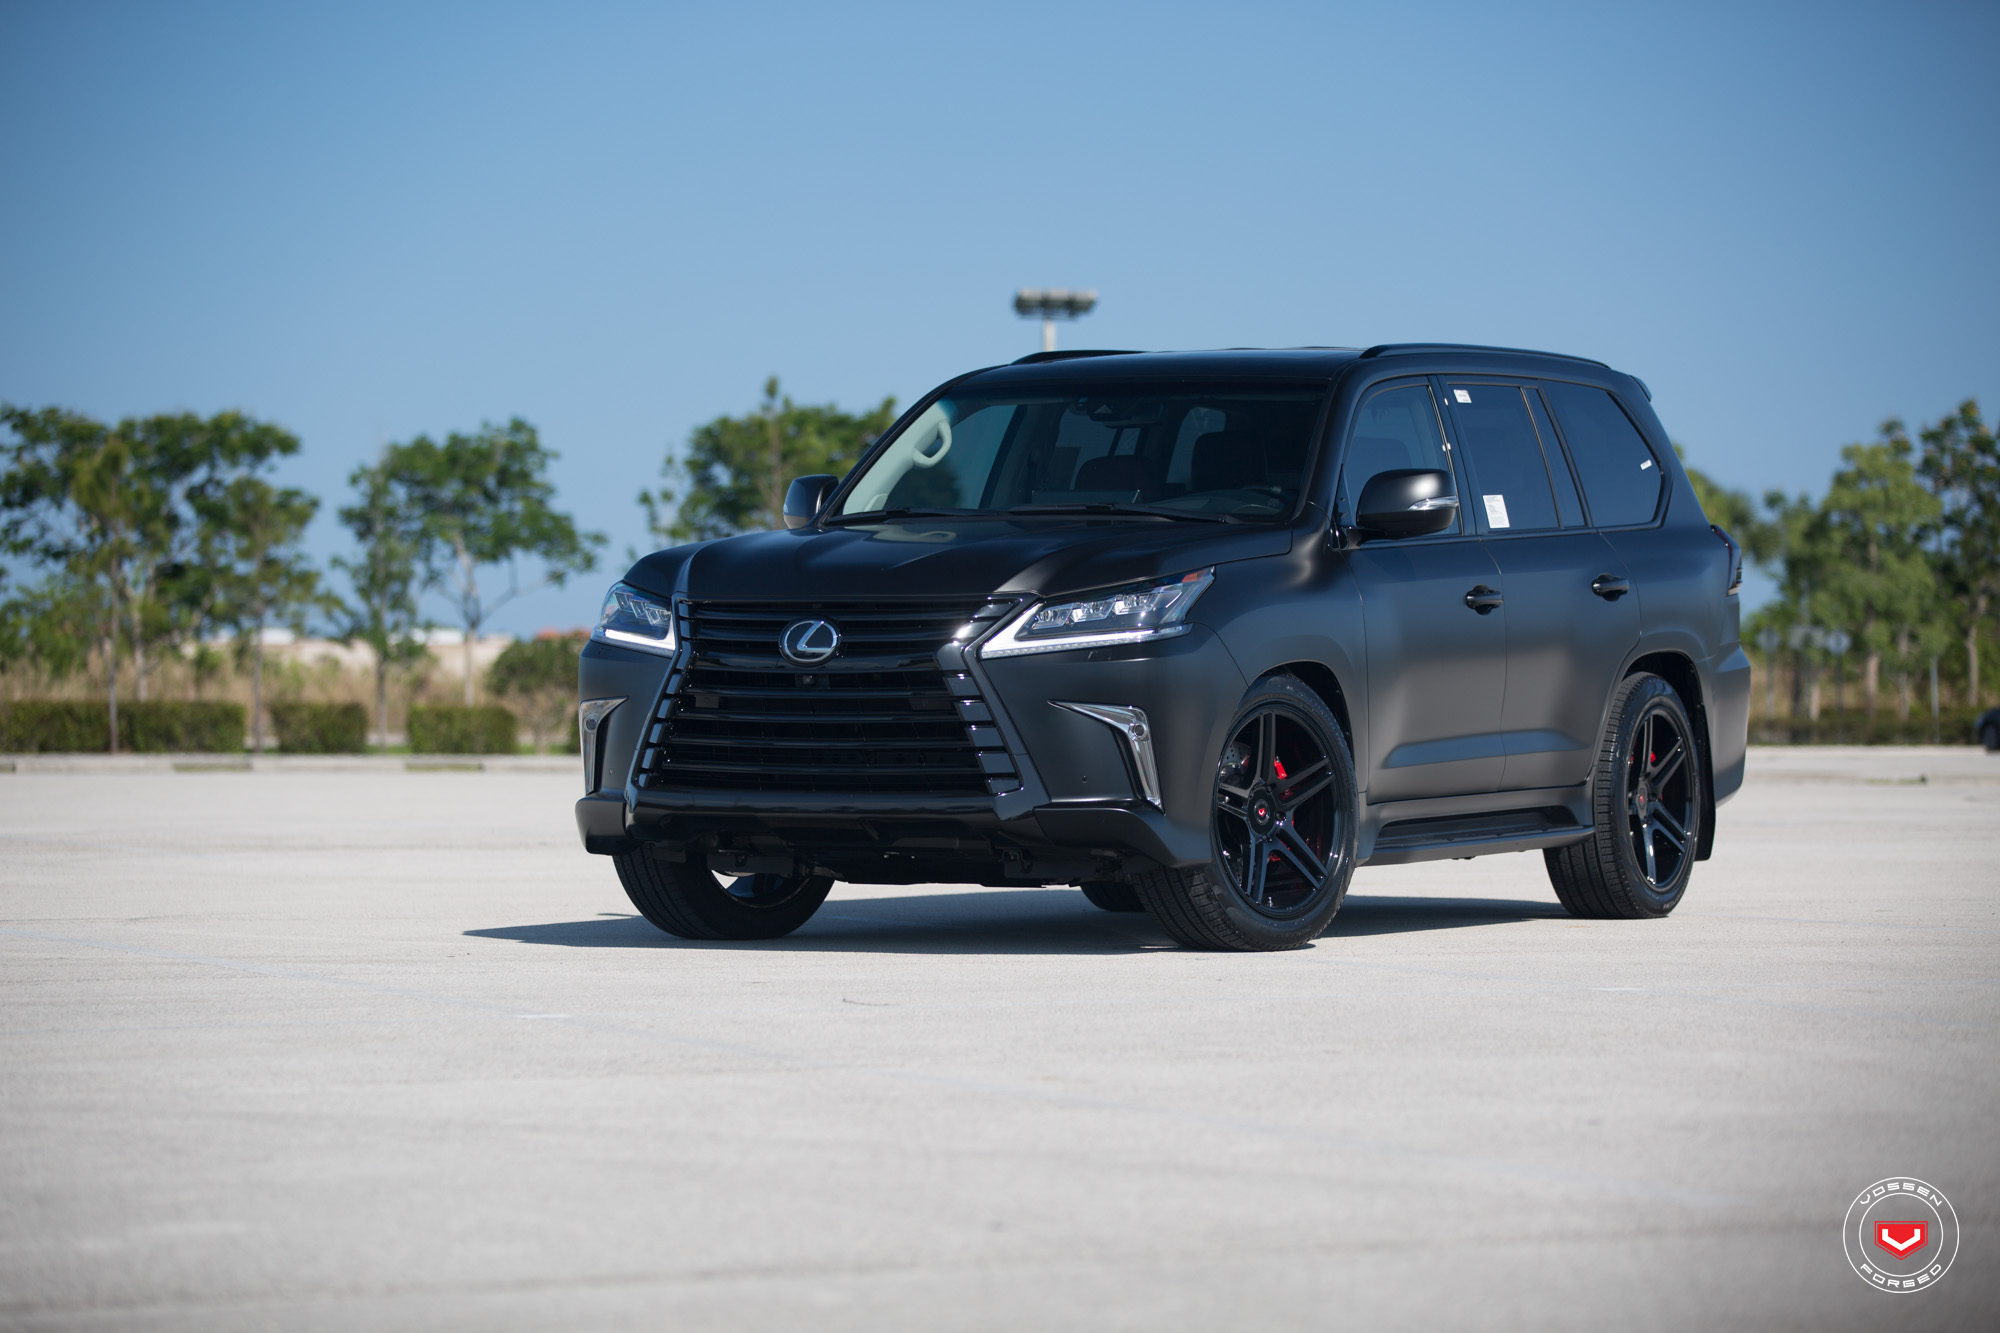 Lexus LX 570 Gets Murdered Out Look and Vossen Wheels ...